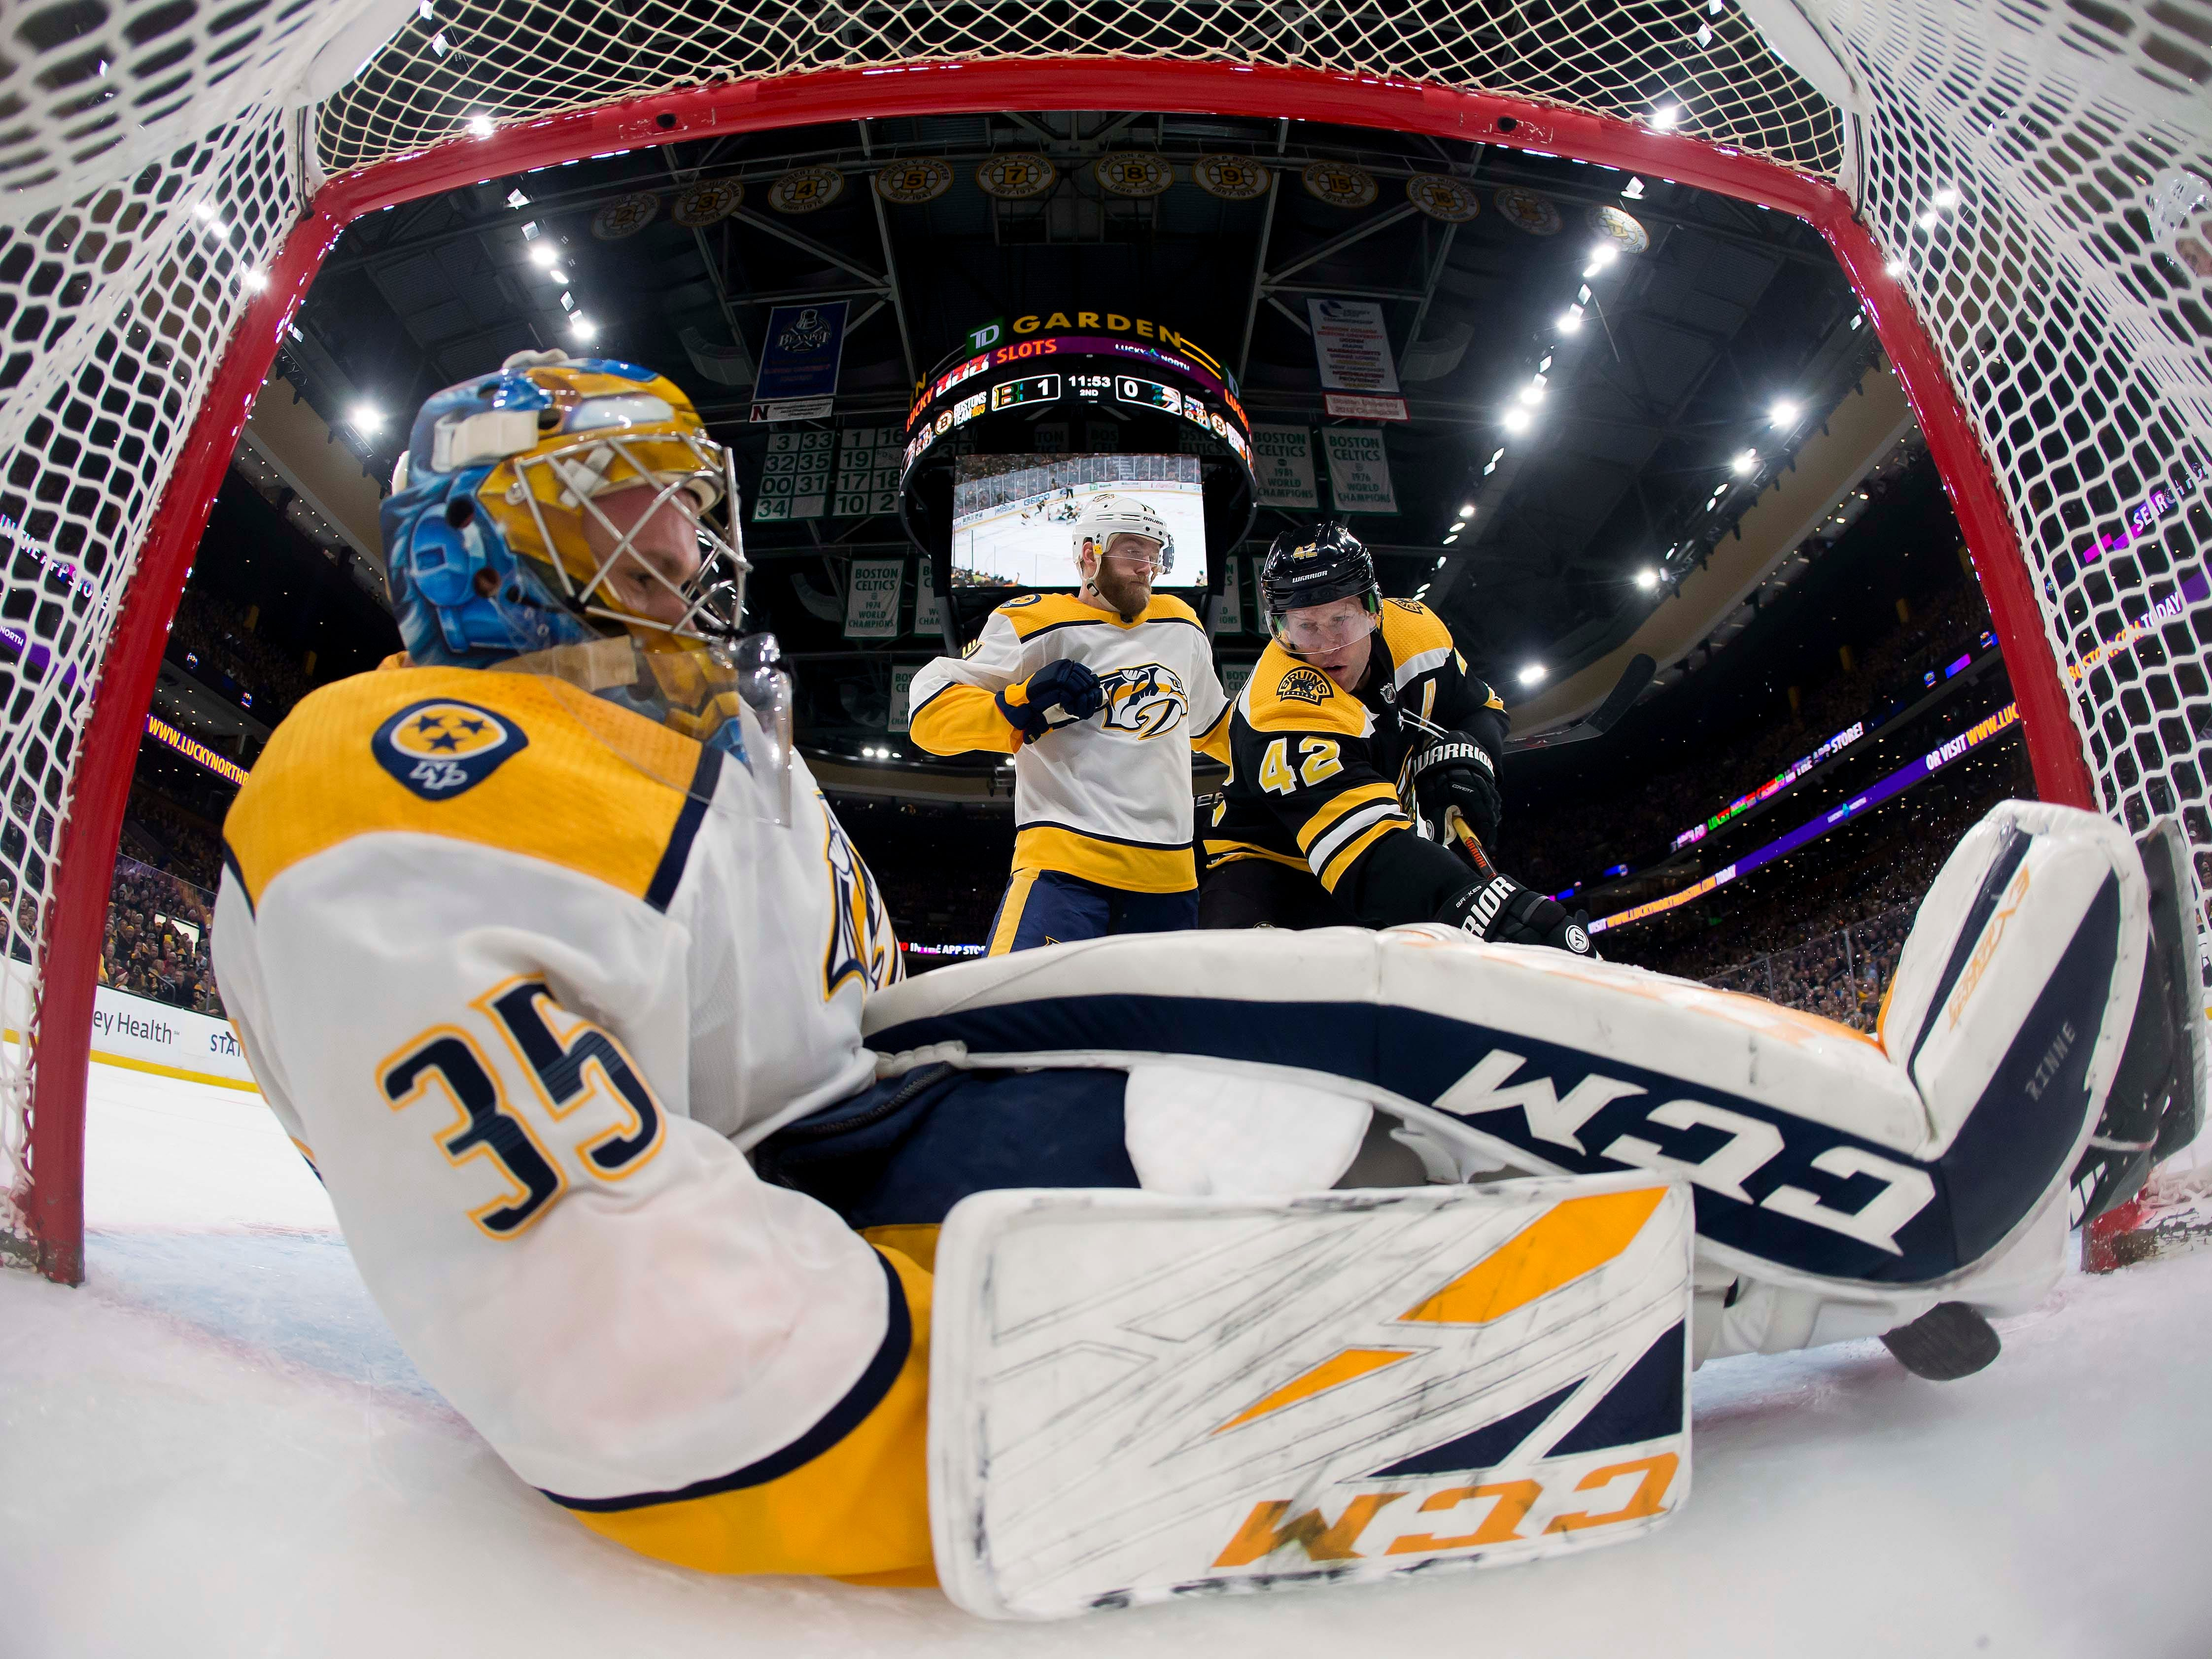 Dec 22: Bruins 5, Predators 2 -- Boston Bruins right wing David Backes (42) can't stuff the puck past Nashville Predators goaltender Pekka Rinne (35) during the second period at TD Garden.